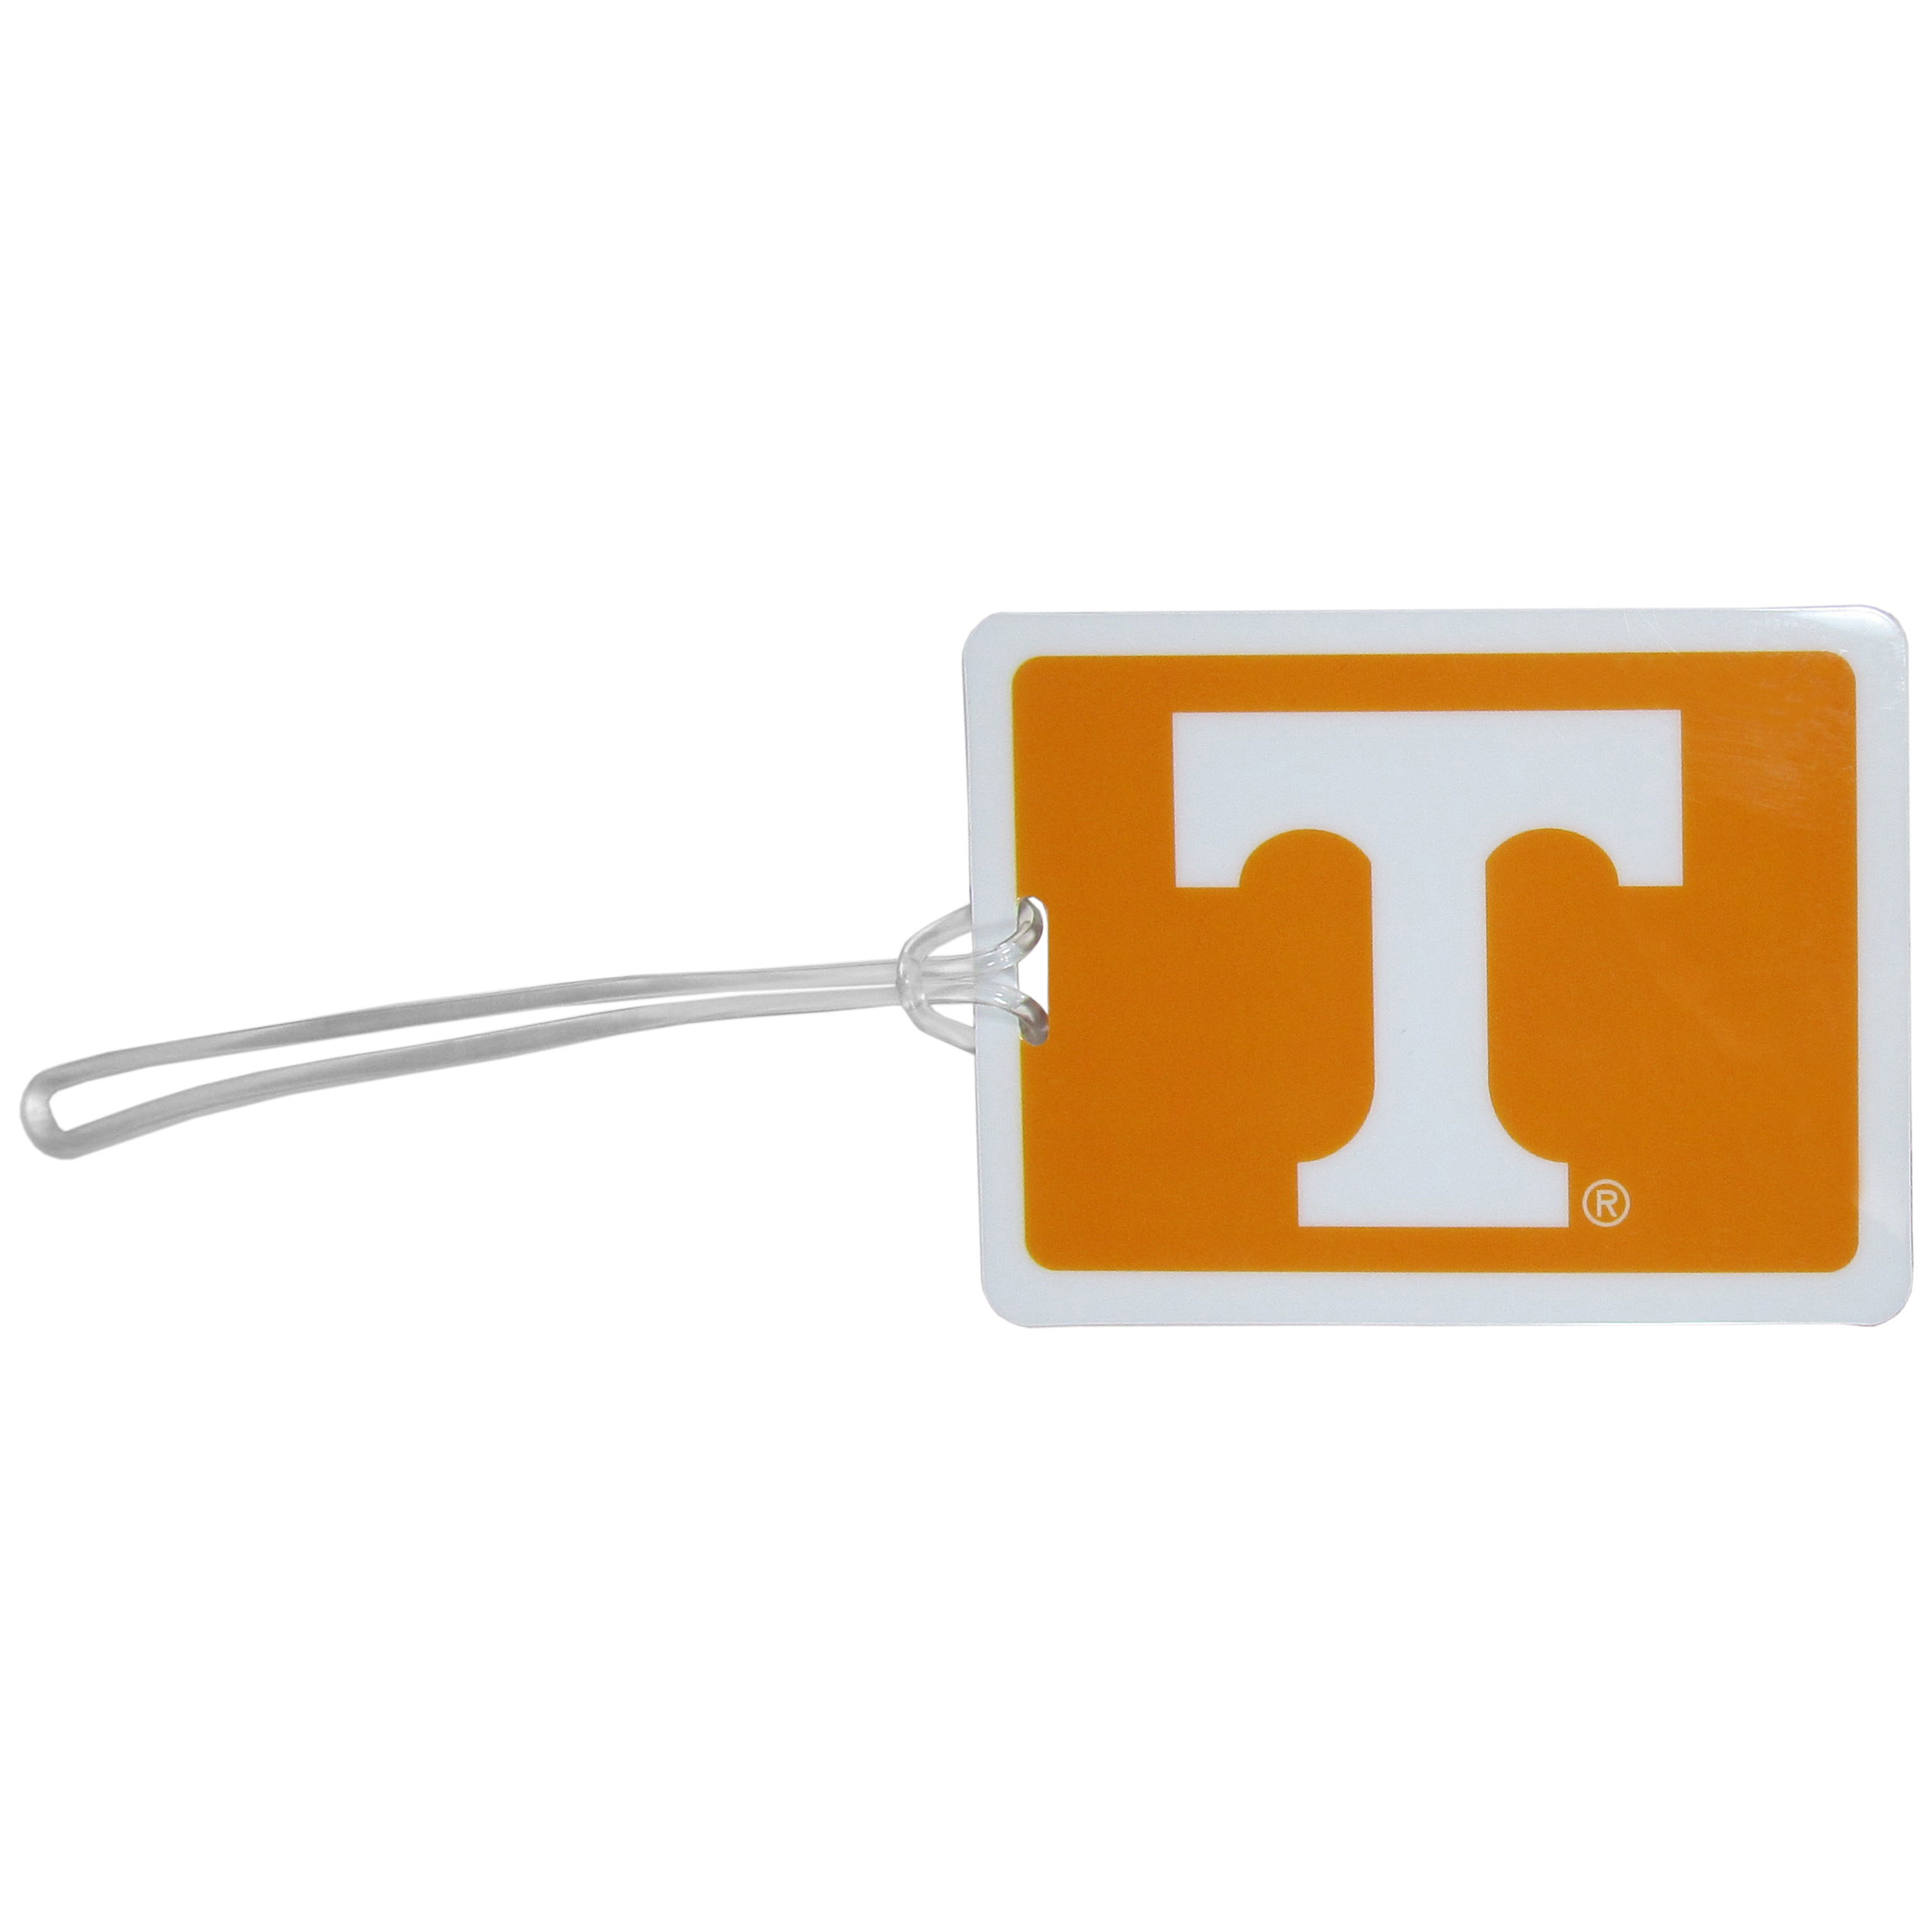 Tennessee Volunteers Vinyl Luggage Tag - Tired of trying to spot your suitcase or bag in a sea of luggage? Try our large and colorful Tennessee Volunteers luggage tag set. The tag is 4x3 inches and has a 5 inch cord to attach it easily to your bags, backpacks or luggage. The front of the tag features the team logo in a bright, team colored background and you can write you name, address and phone number on the back of the tag.